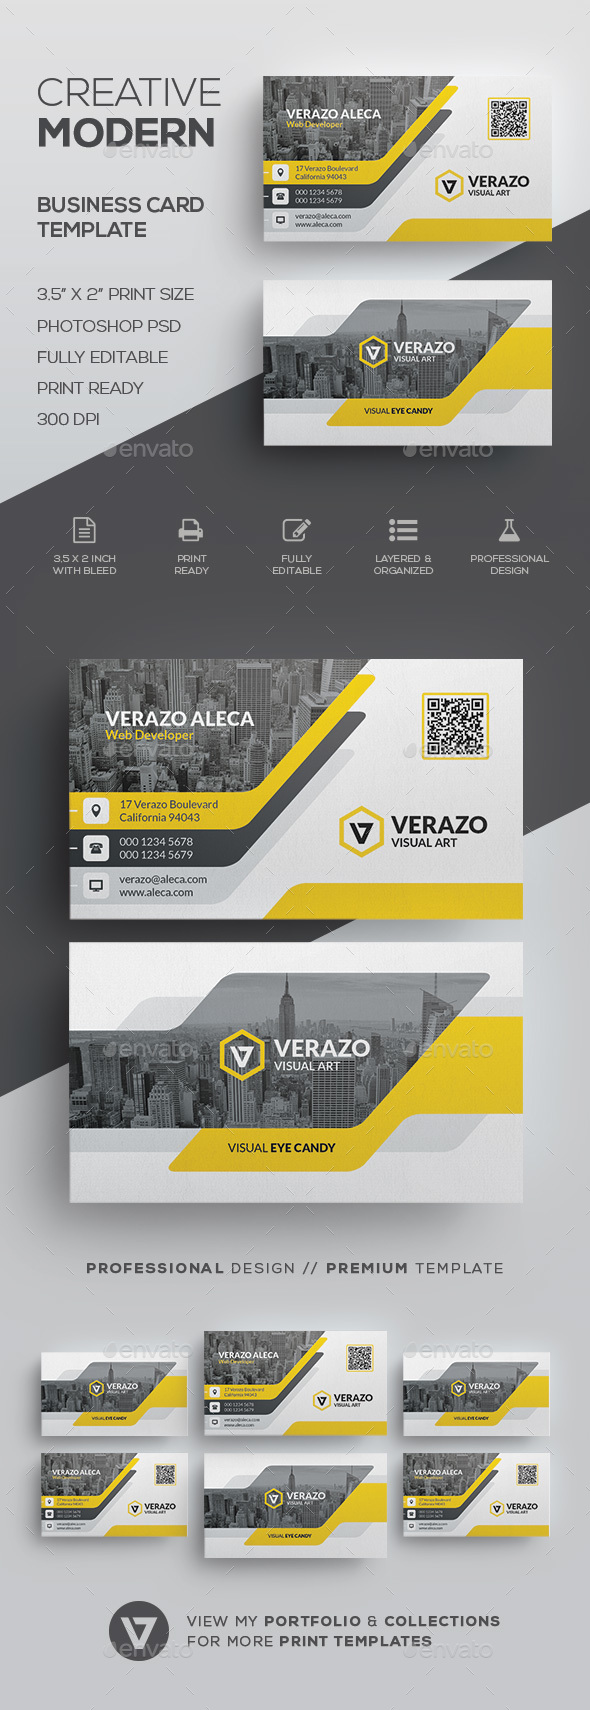 Modern business card template by verazo graphicriver modern business card template corporate business cards reheart Image collections